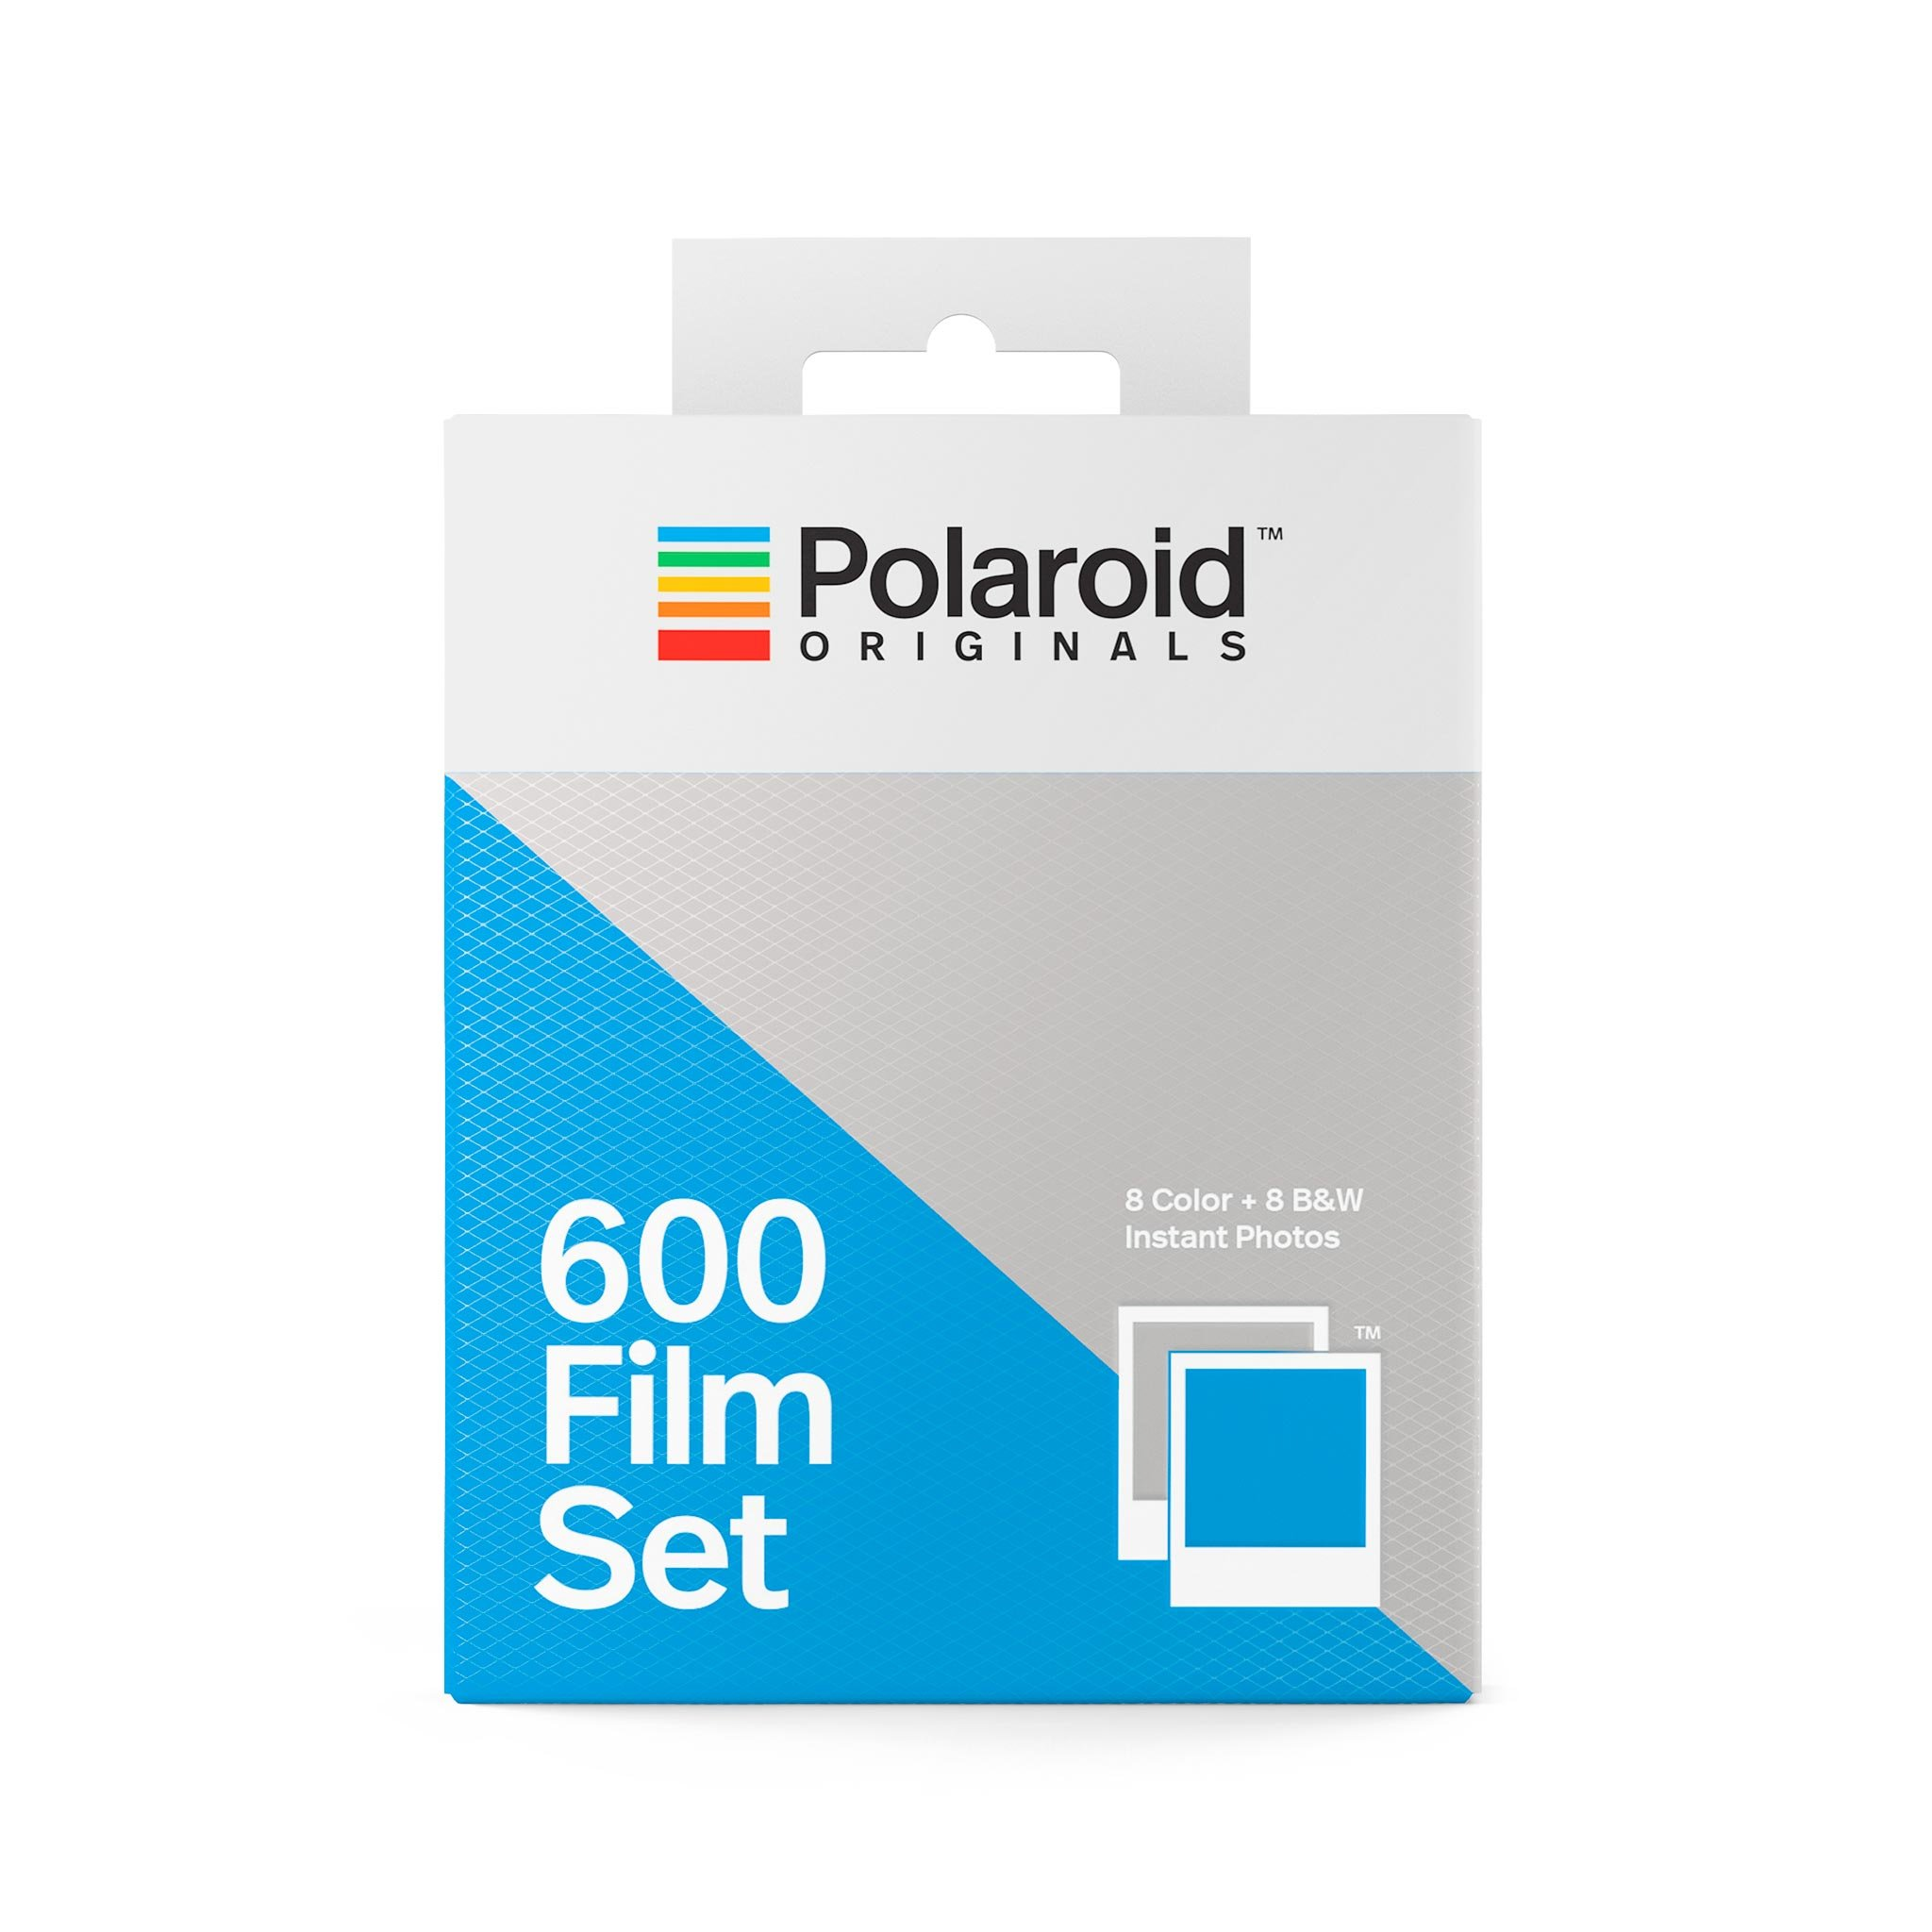 Polaroid Originals 600 Film Set 1 Color   1 BW